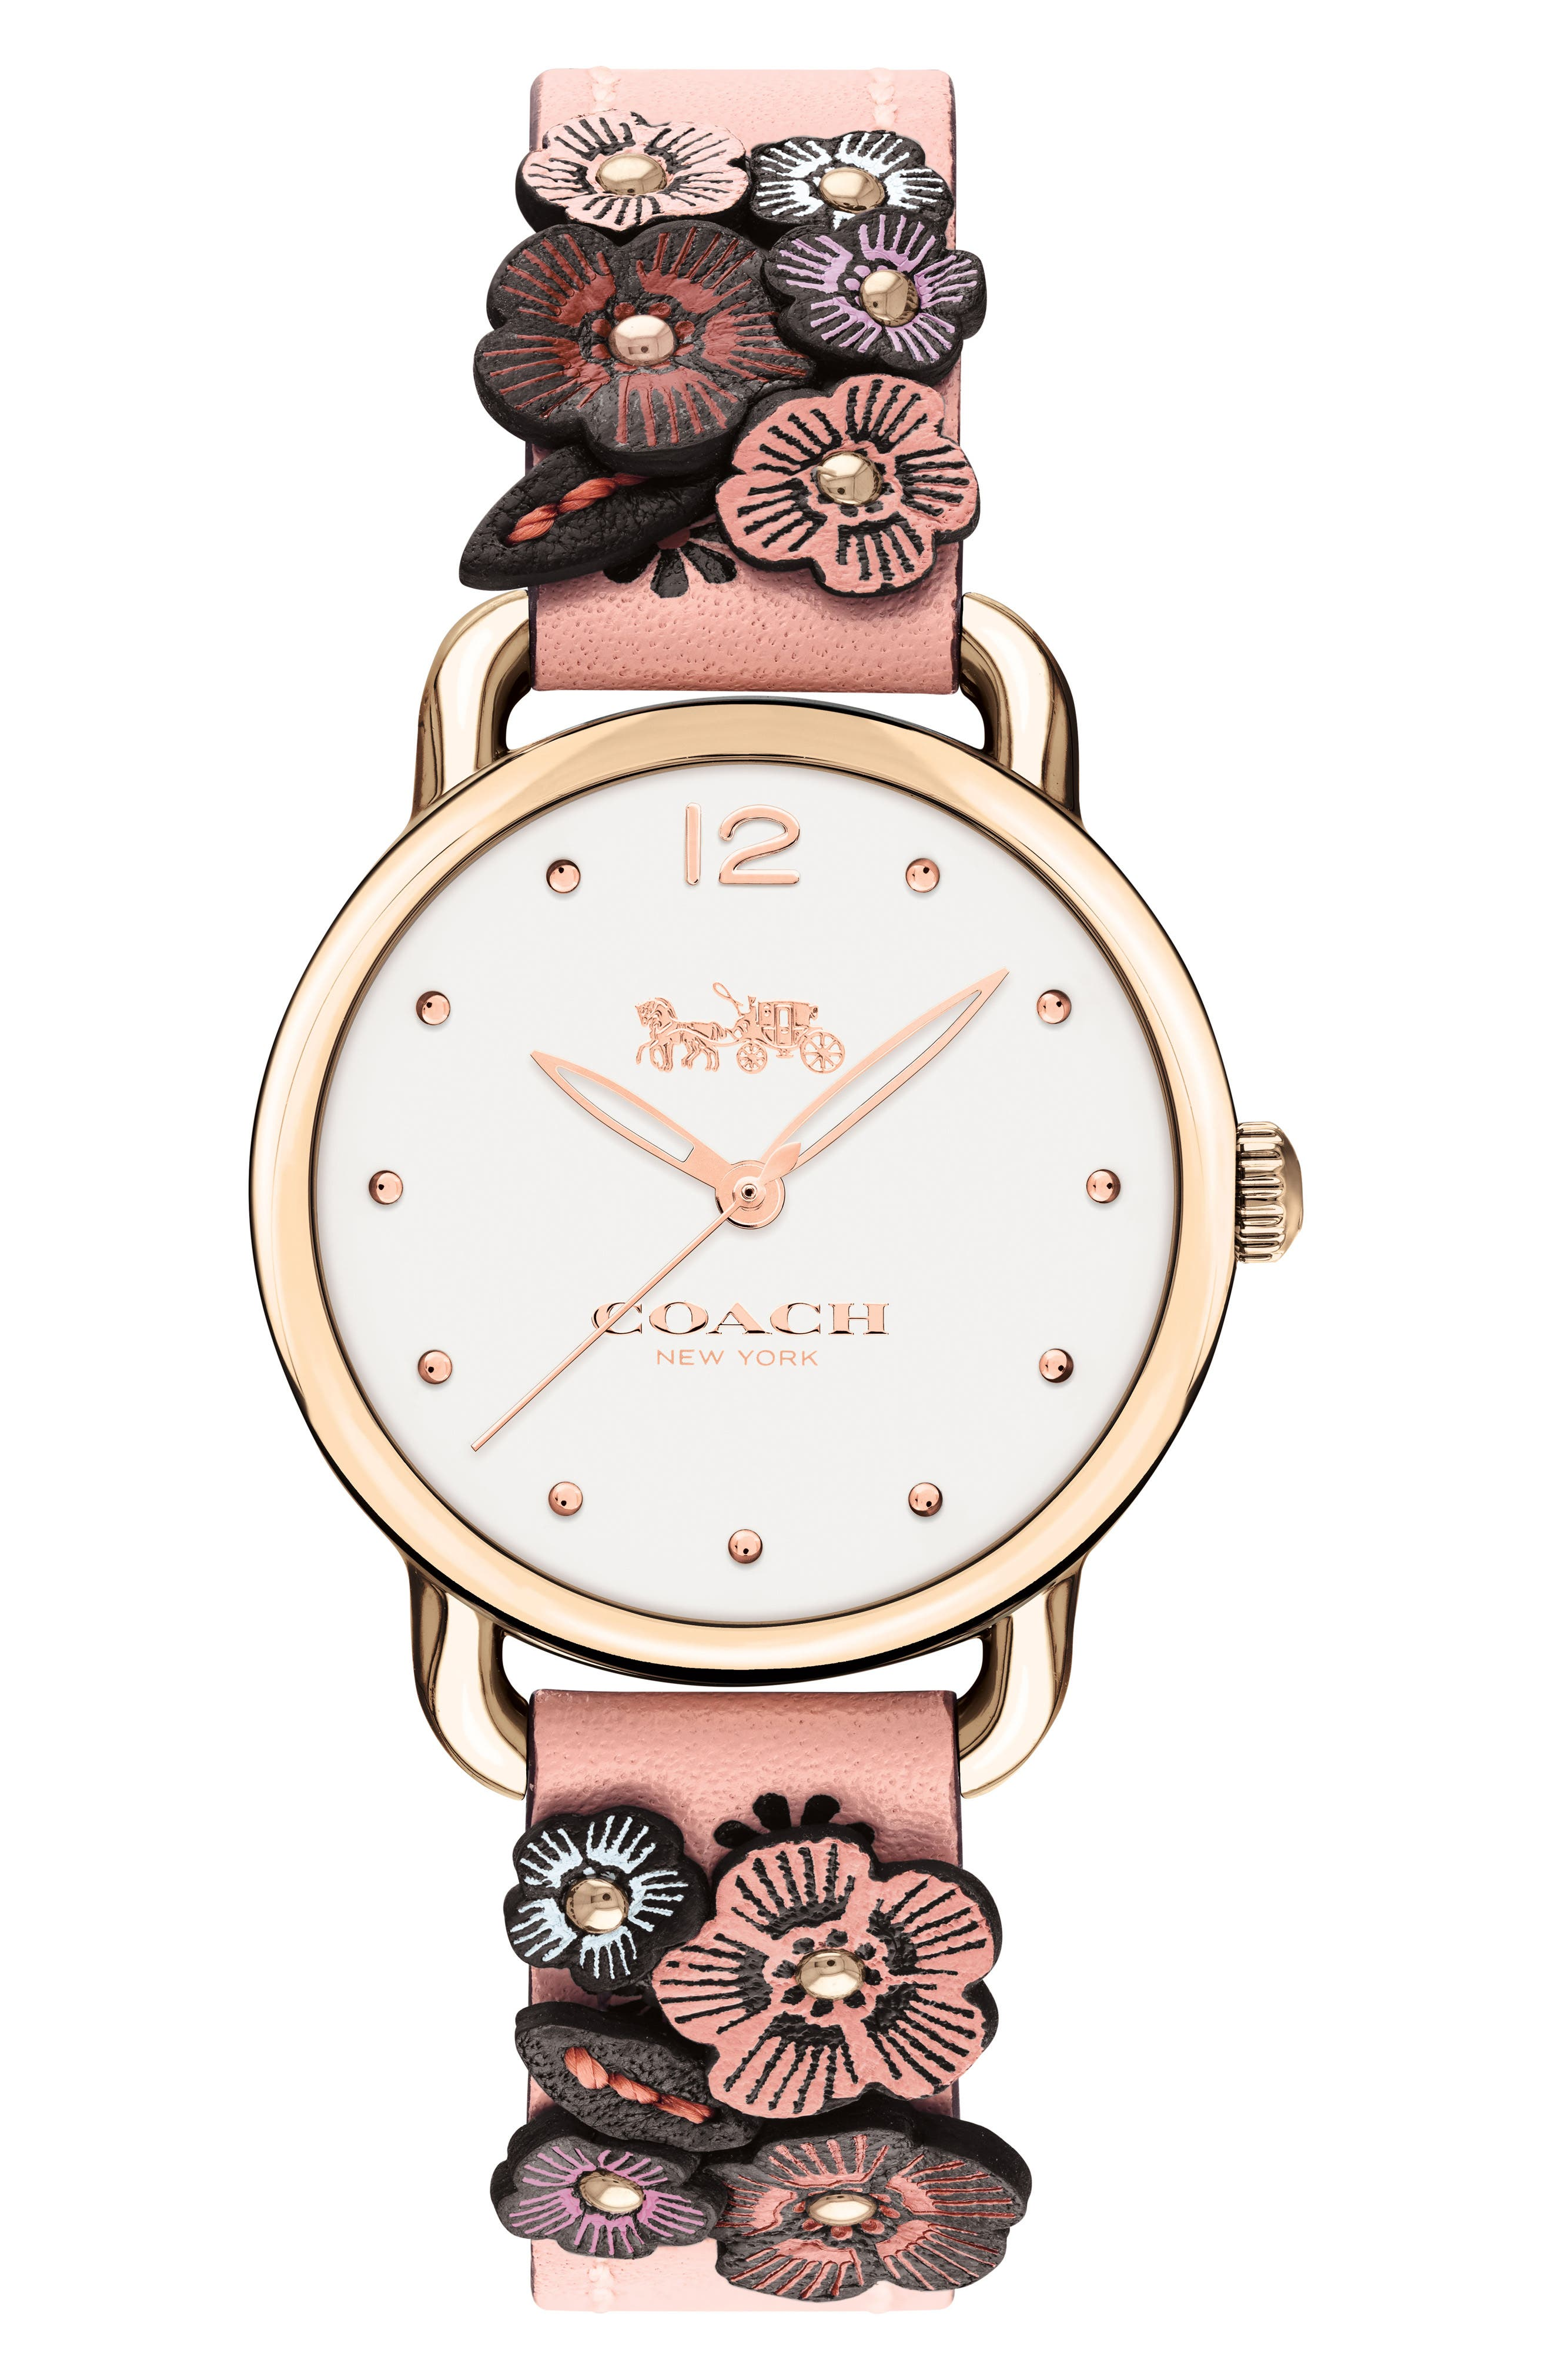 COACH Delancey Floral Leather Strap Watch, 28mm